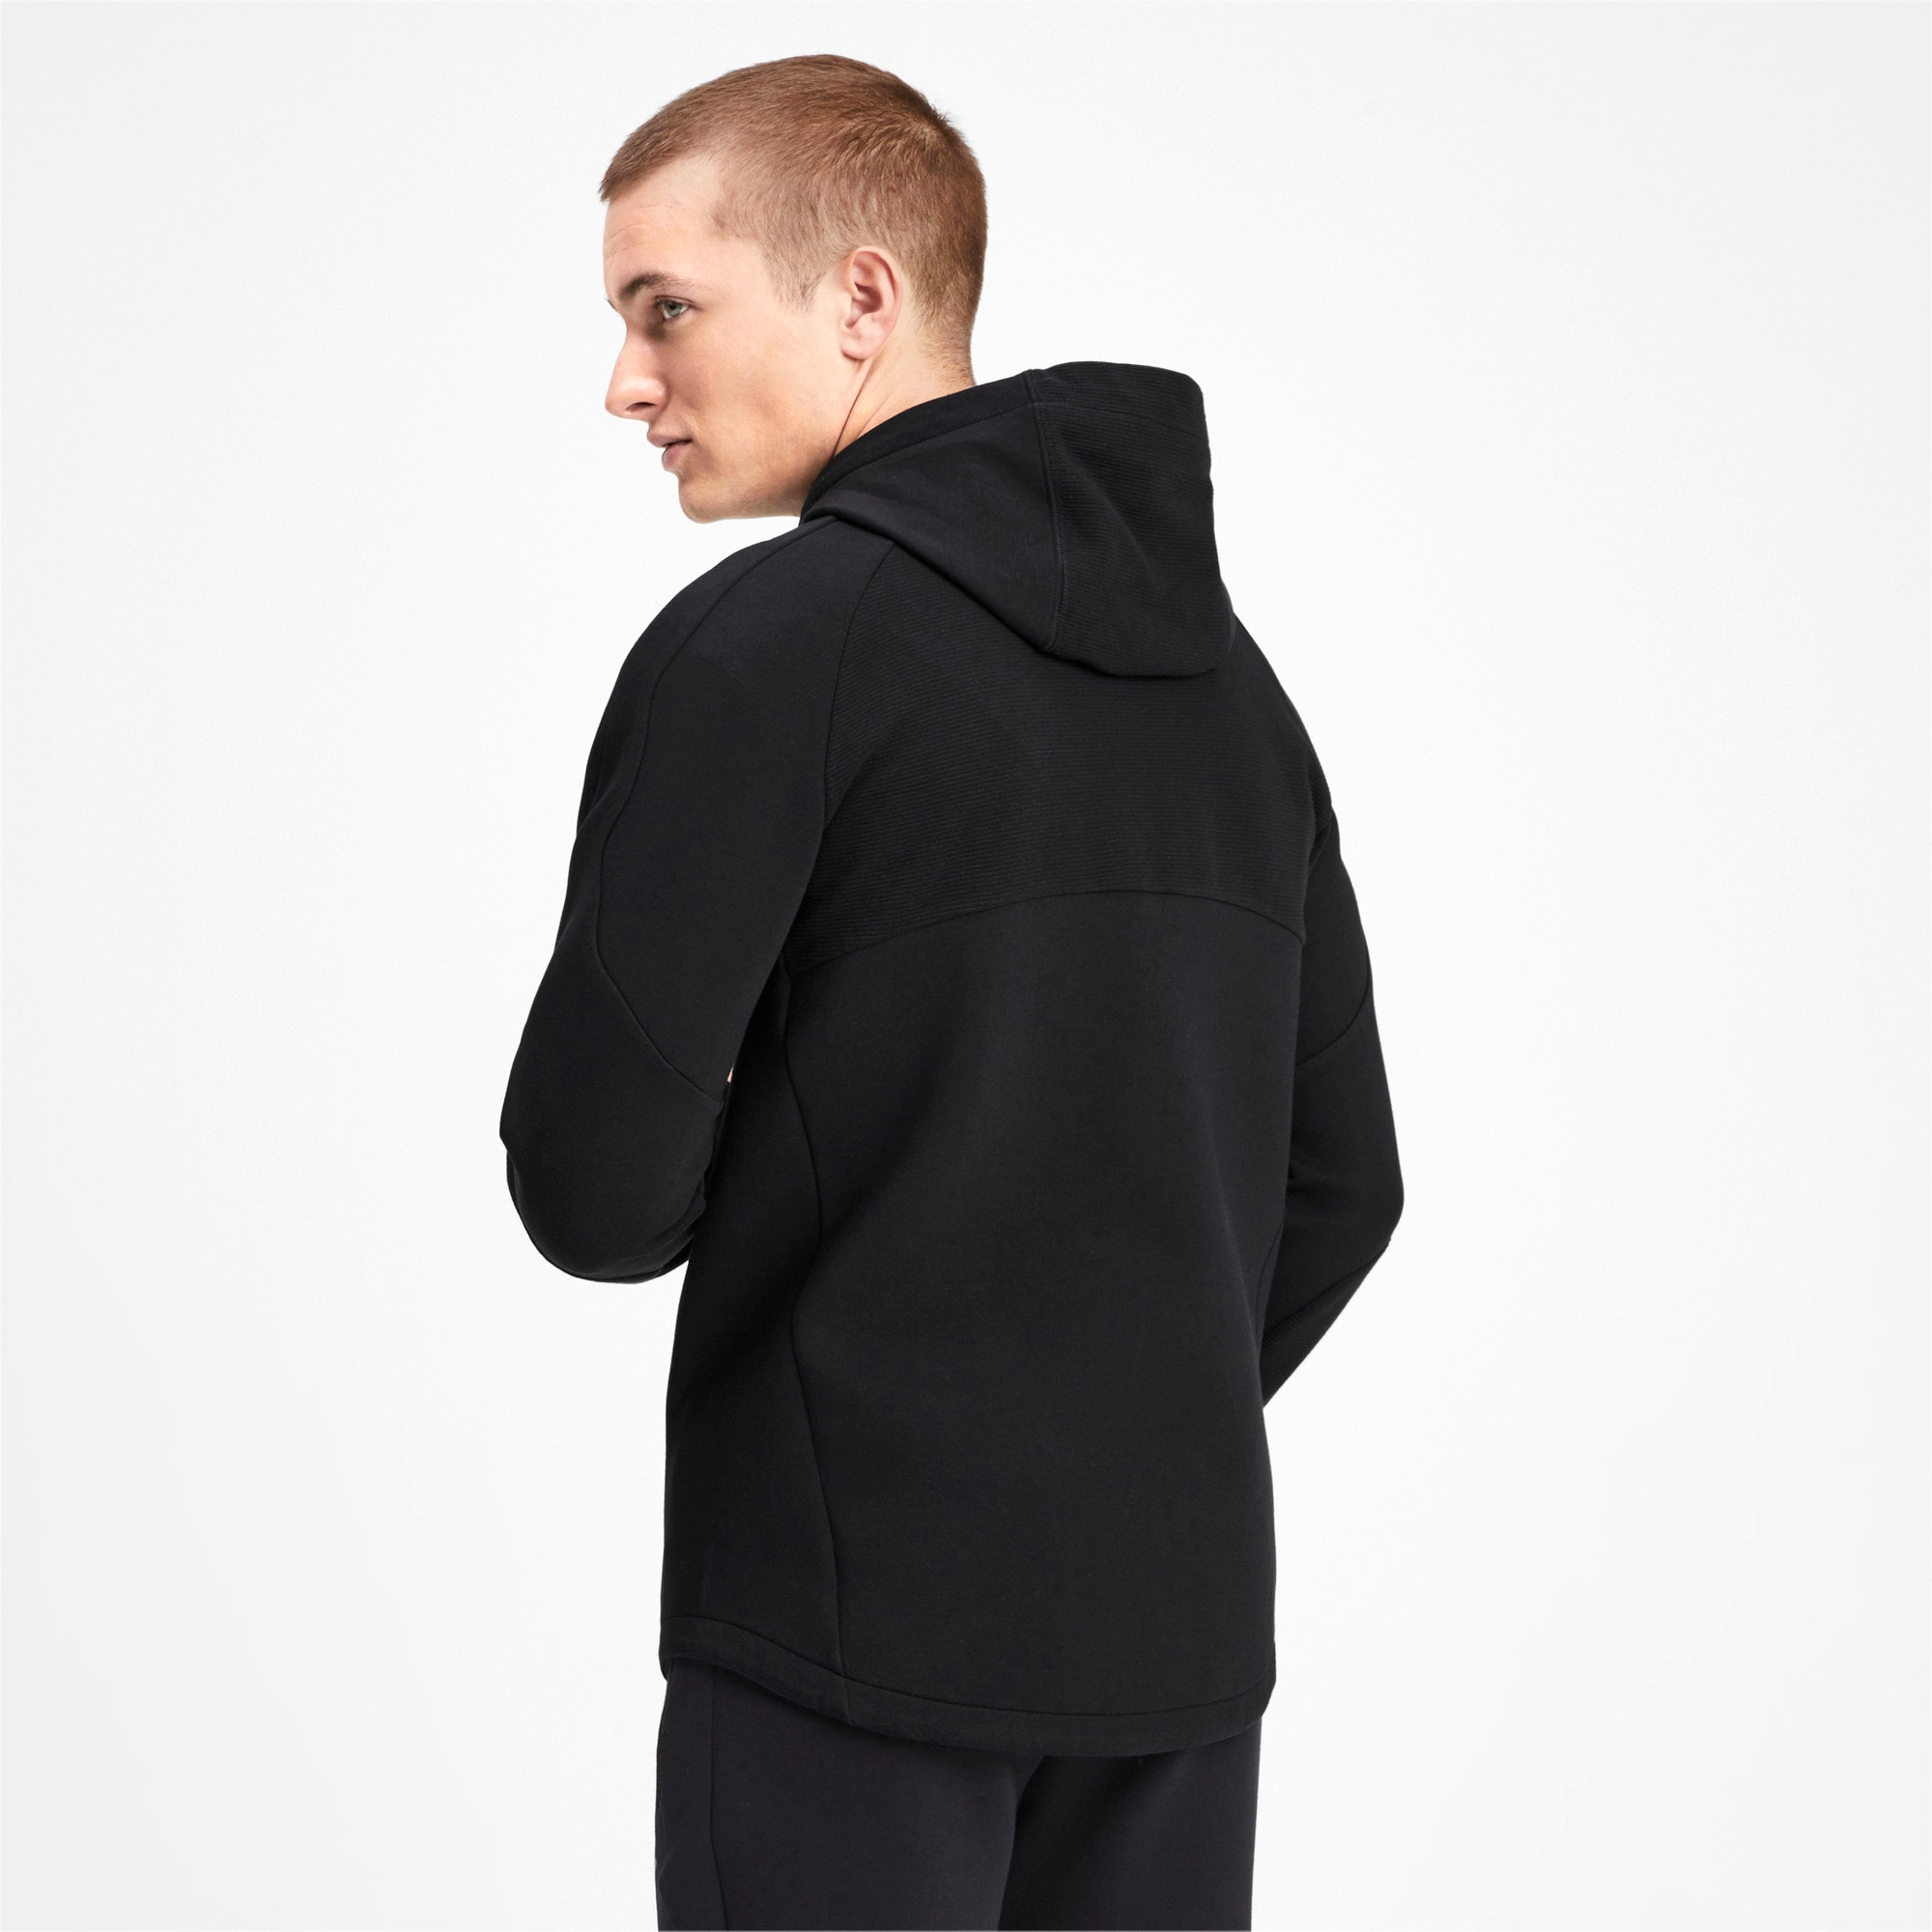 Thumbnail 2 of Evostripe Full Zip Men's Hoodie, Puma Black, medium